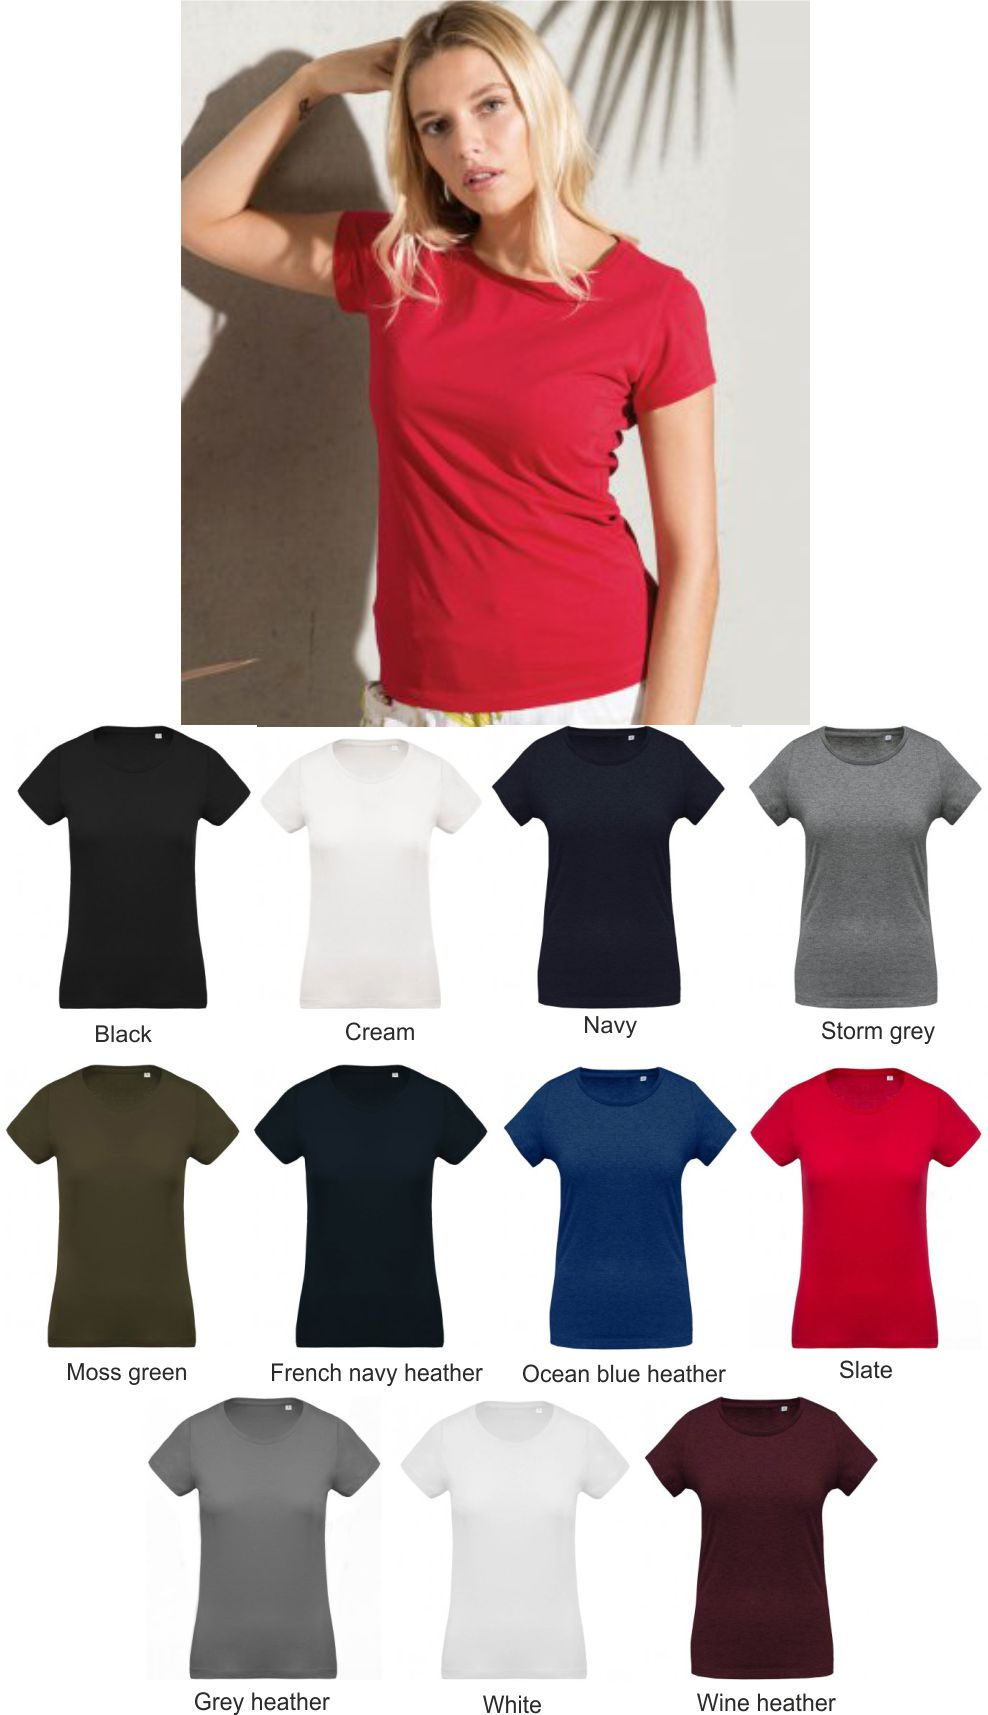 7d988ef55cc KB391 Kariban Ladies Organic Crew Neck T-Shirt - £6.12   Ark Trading ...